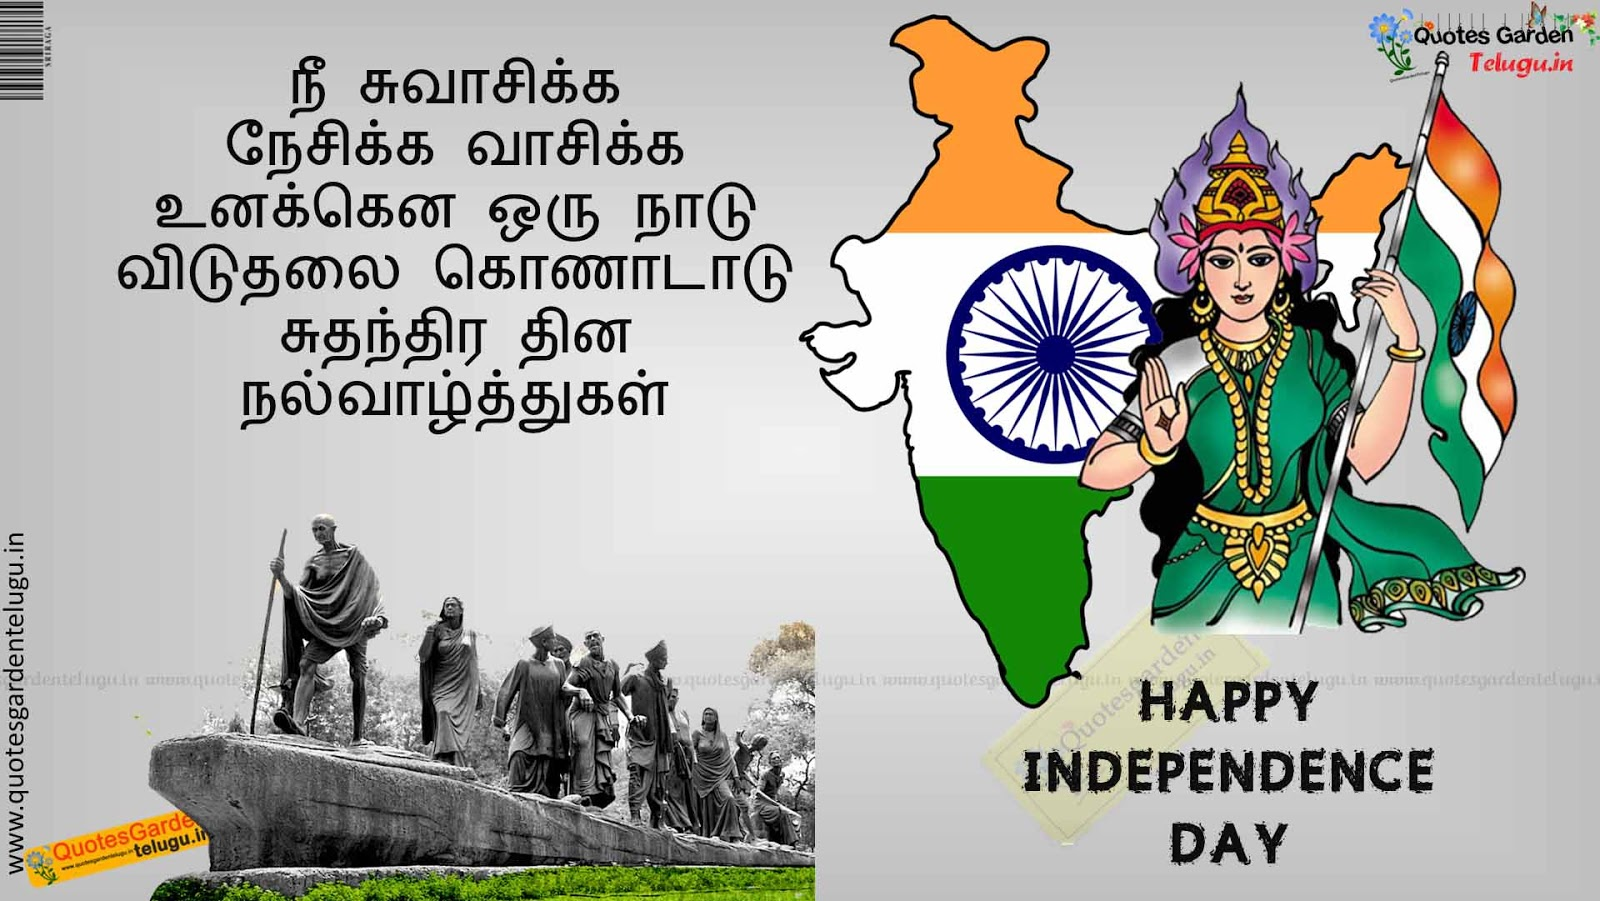 15th August Independence Day Gandhi Quotes In Tamil 883 Quotes Garden Telugu Telugu Quotes English Quotes Hindi Quotes